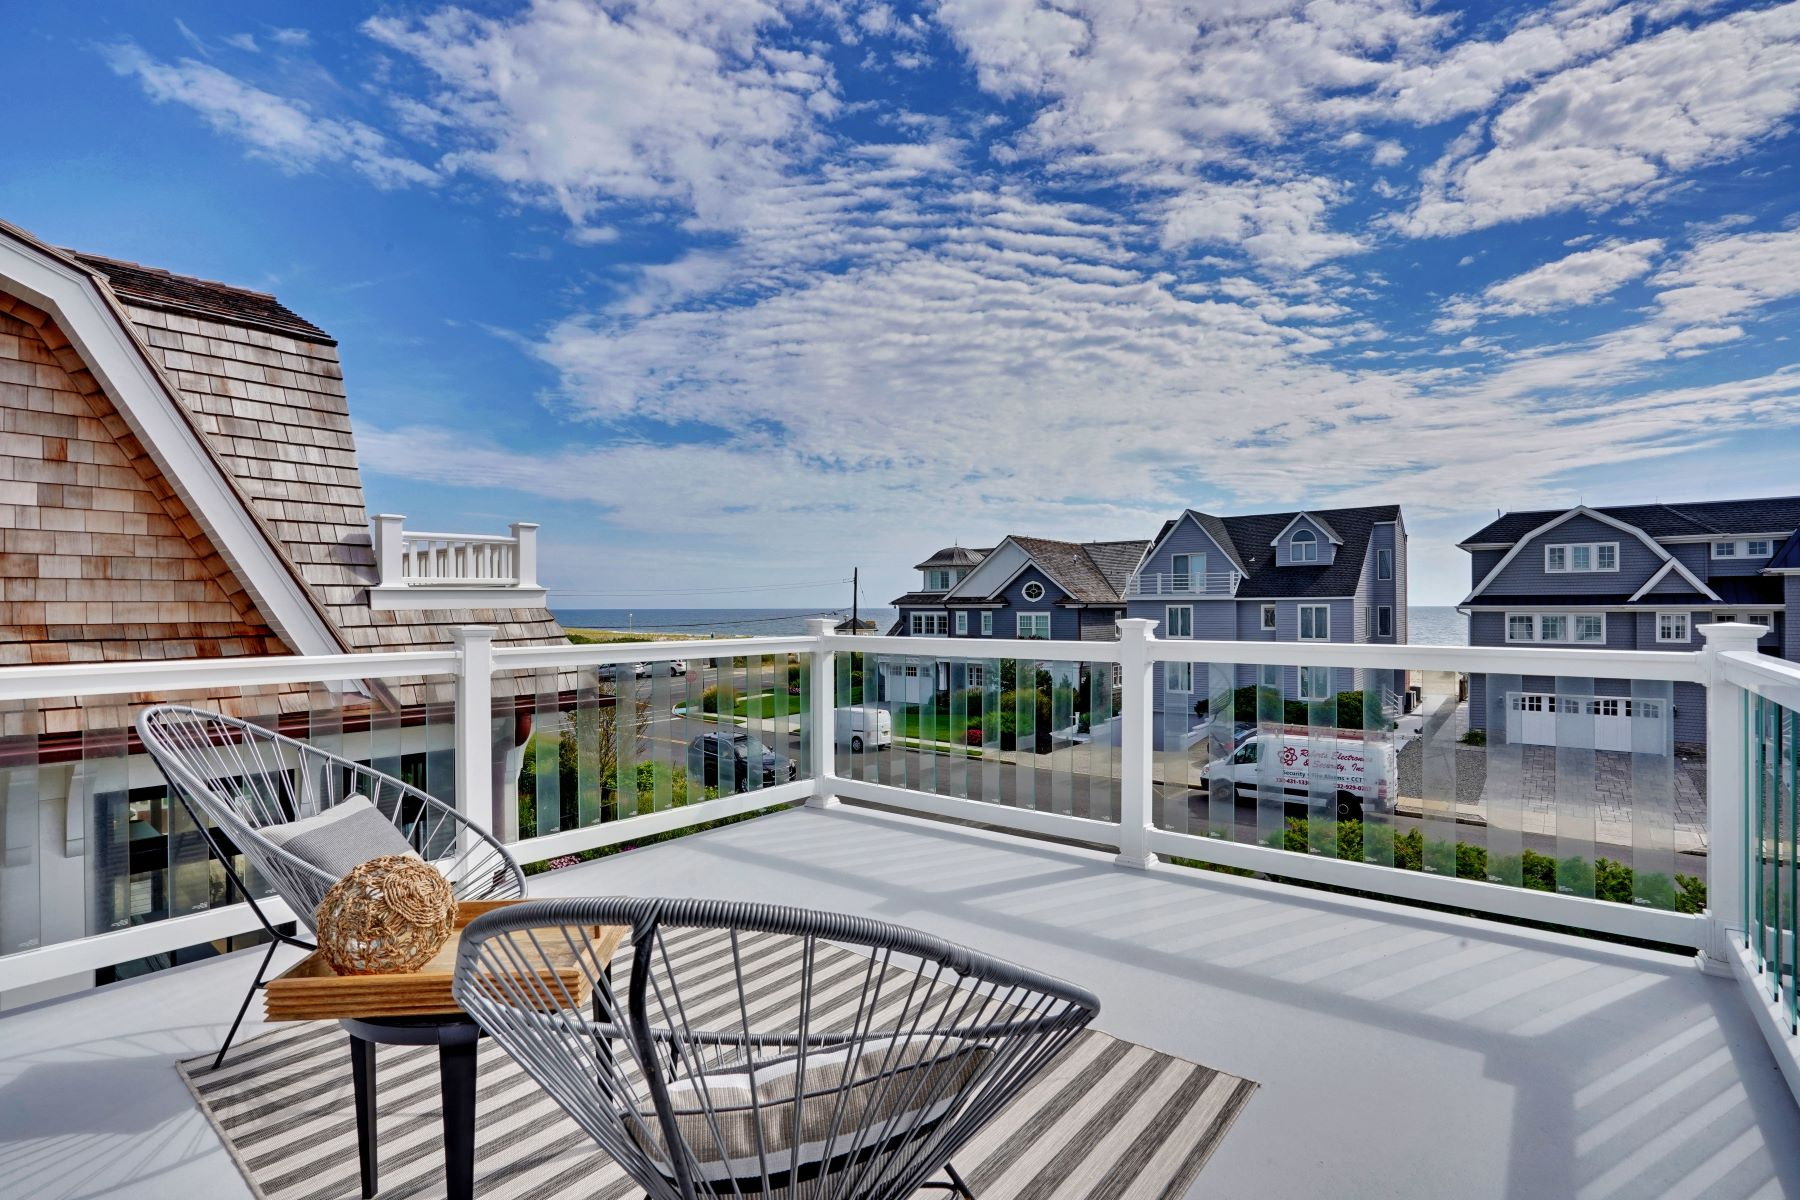 Single Family Homes for Active at Seaside Escape 804 1st Avenue Sea Girt, New Jersey 08750 United States